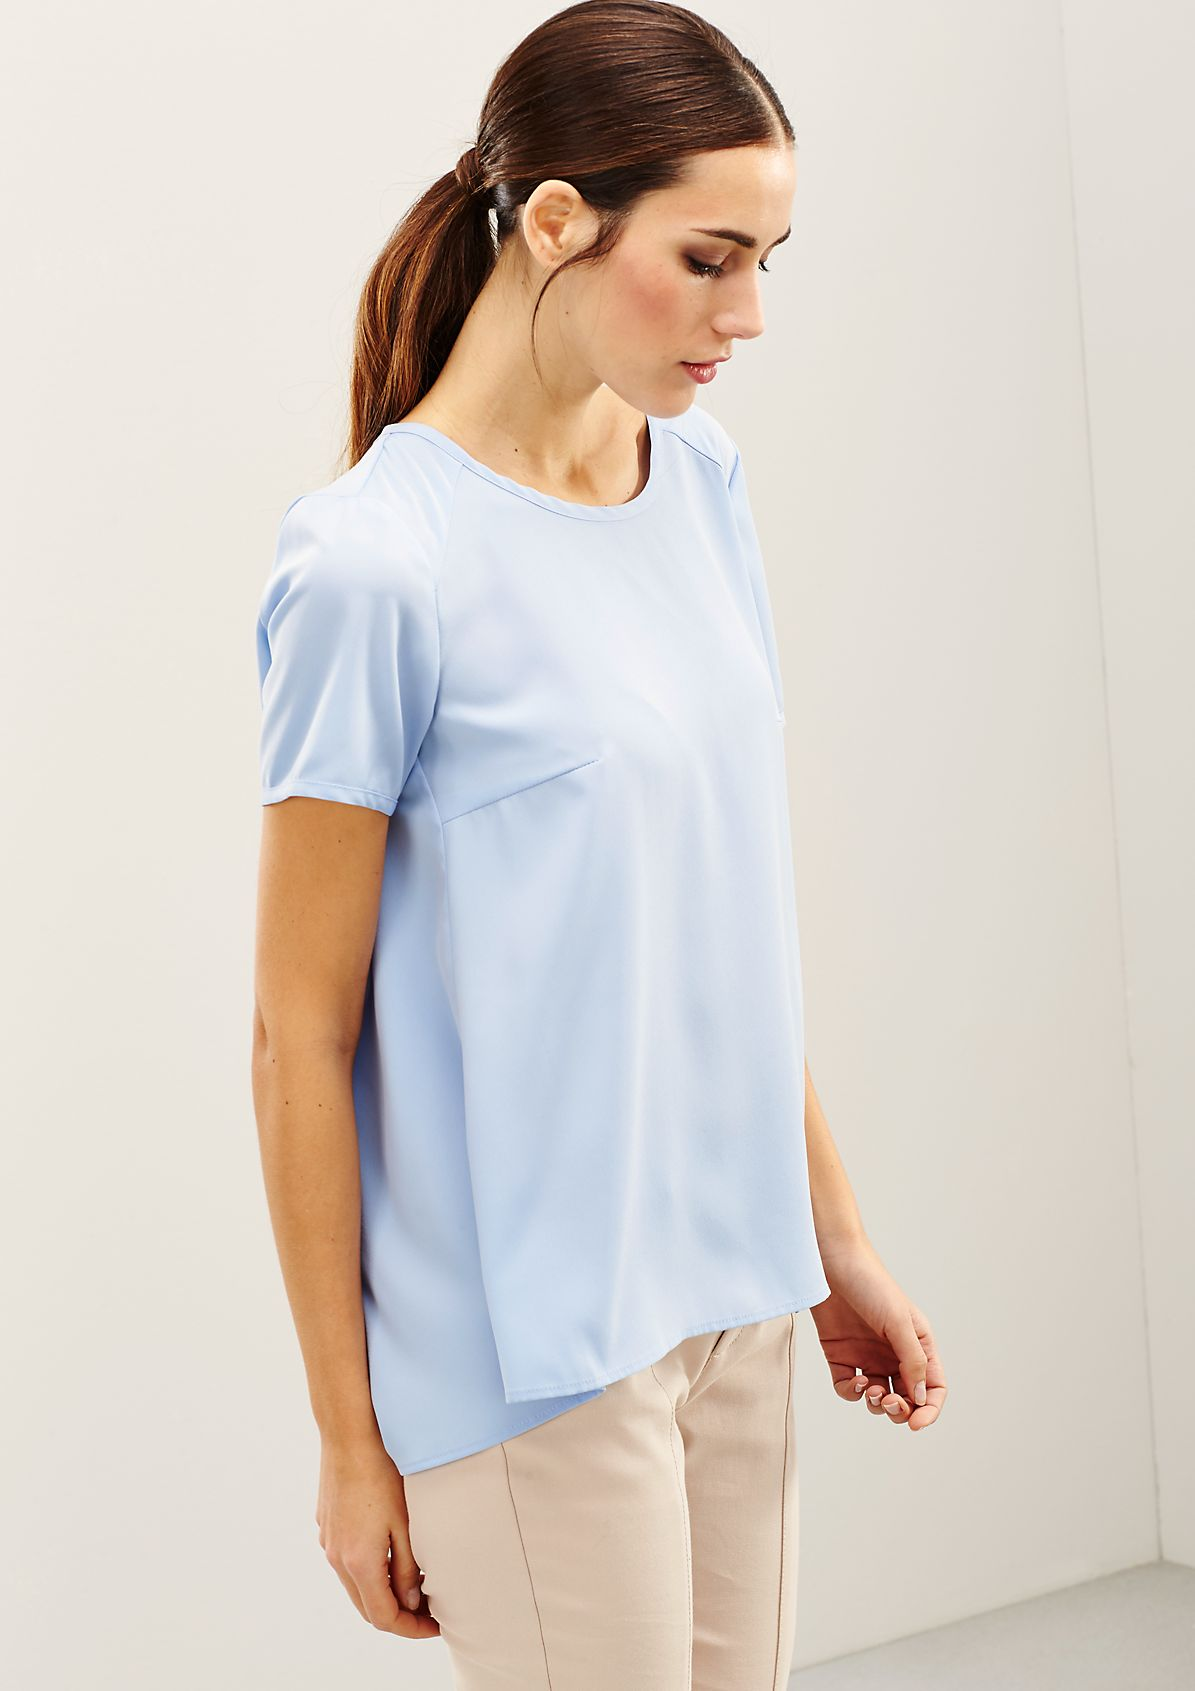 Elegant short sleeve blouse with decorative puckers from s.Oliver